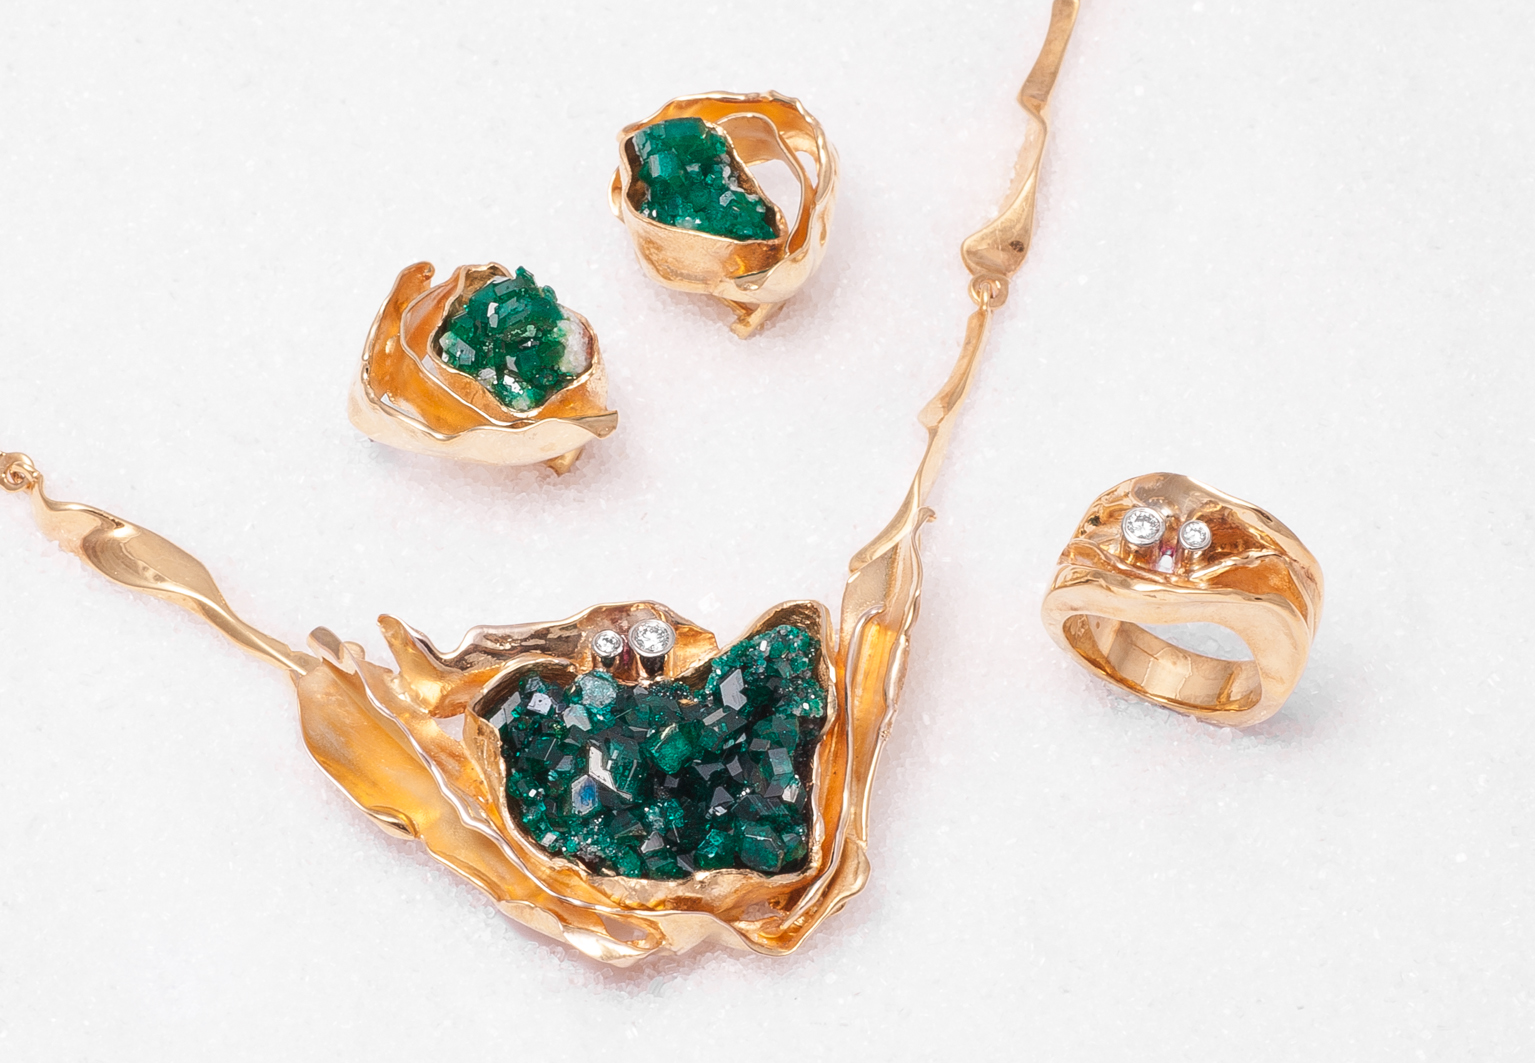 Events donnas smykkegalleri a pendantlock with a dioptase crystal and billow chain there is also matching earrings with dioptase crystal and a ring in gold with 2 diamonds aloadofball Choice Image